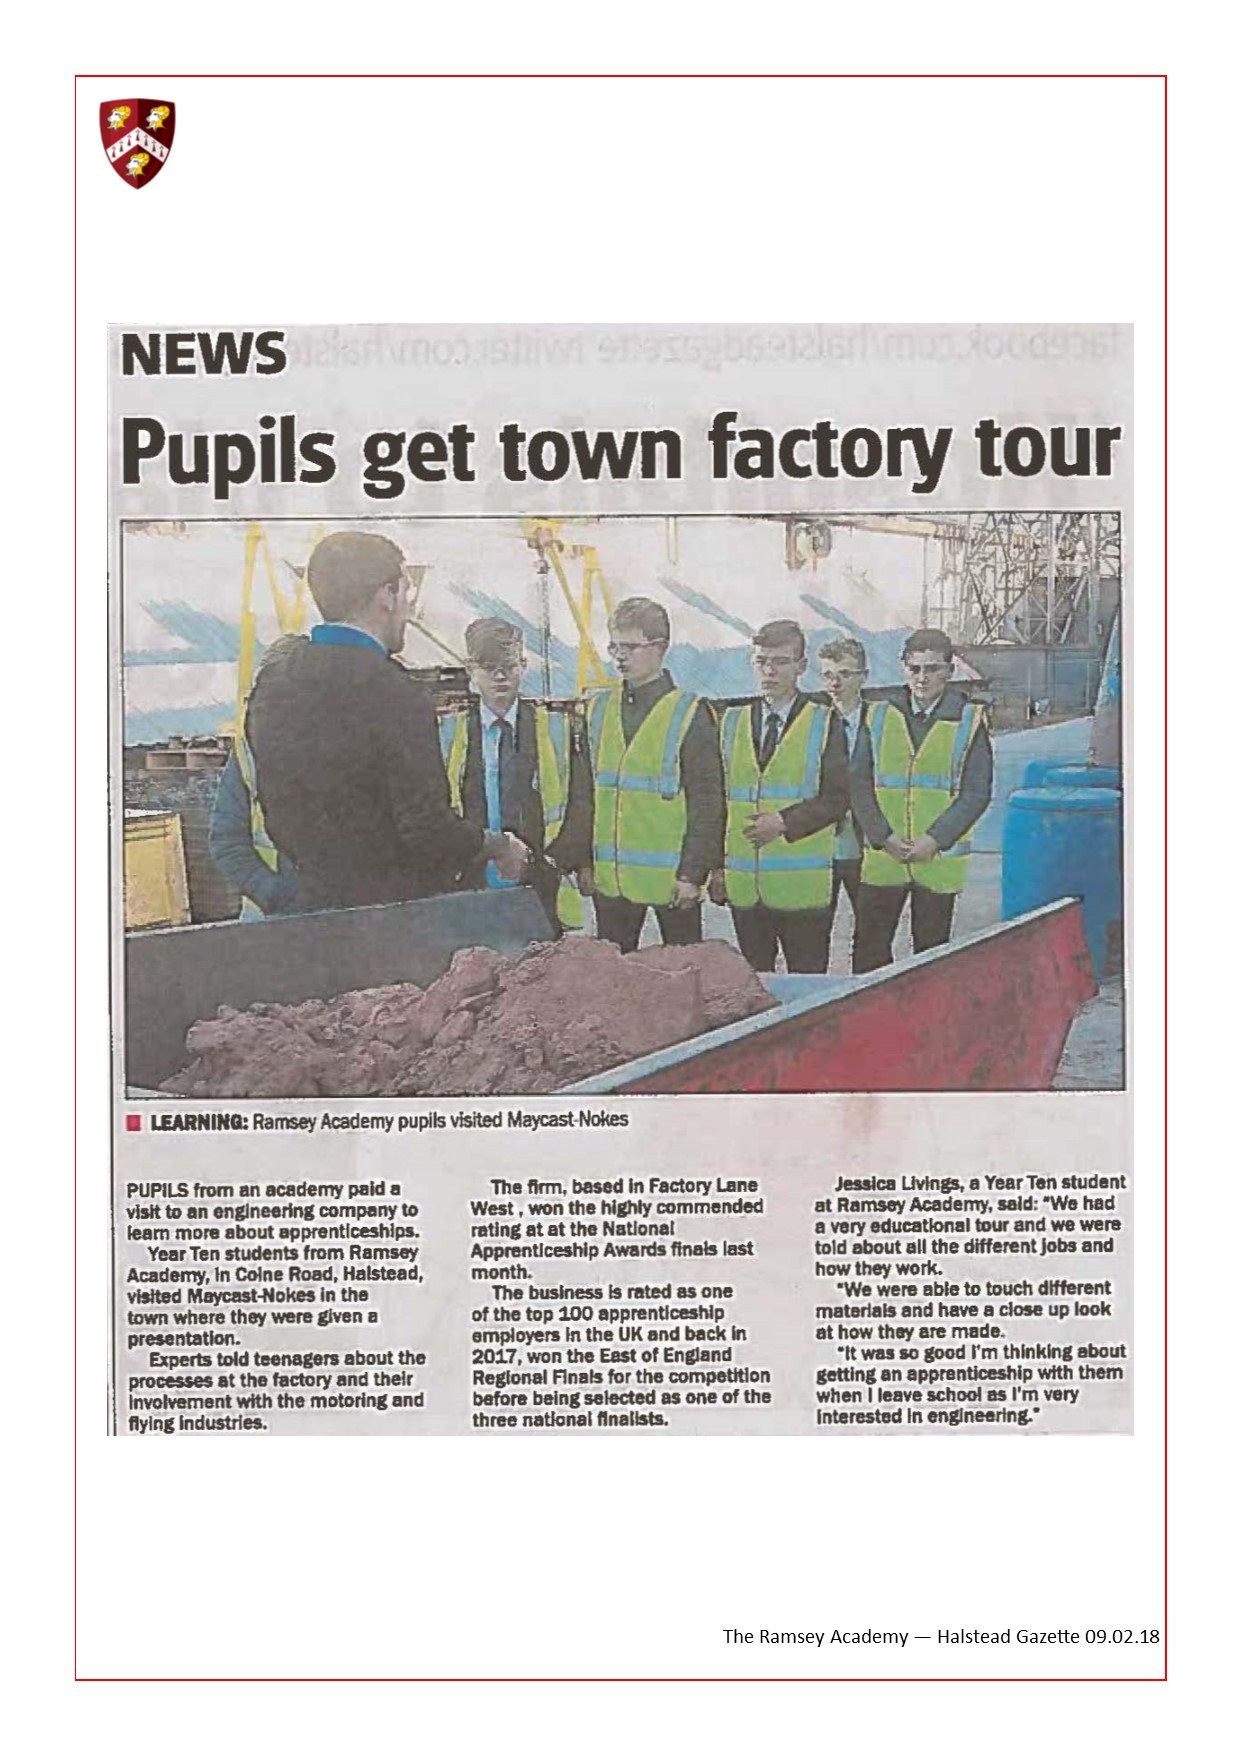 Pupils get Town Factory Tour 09.02.18